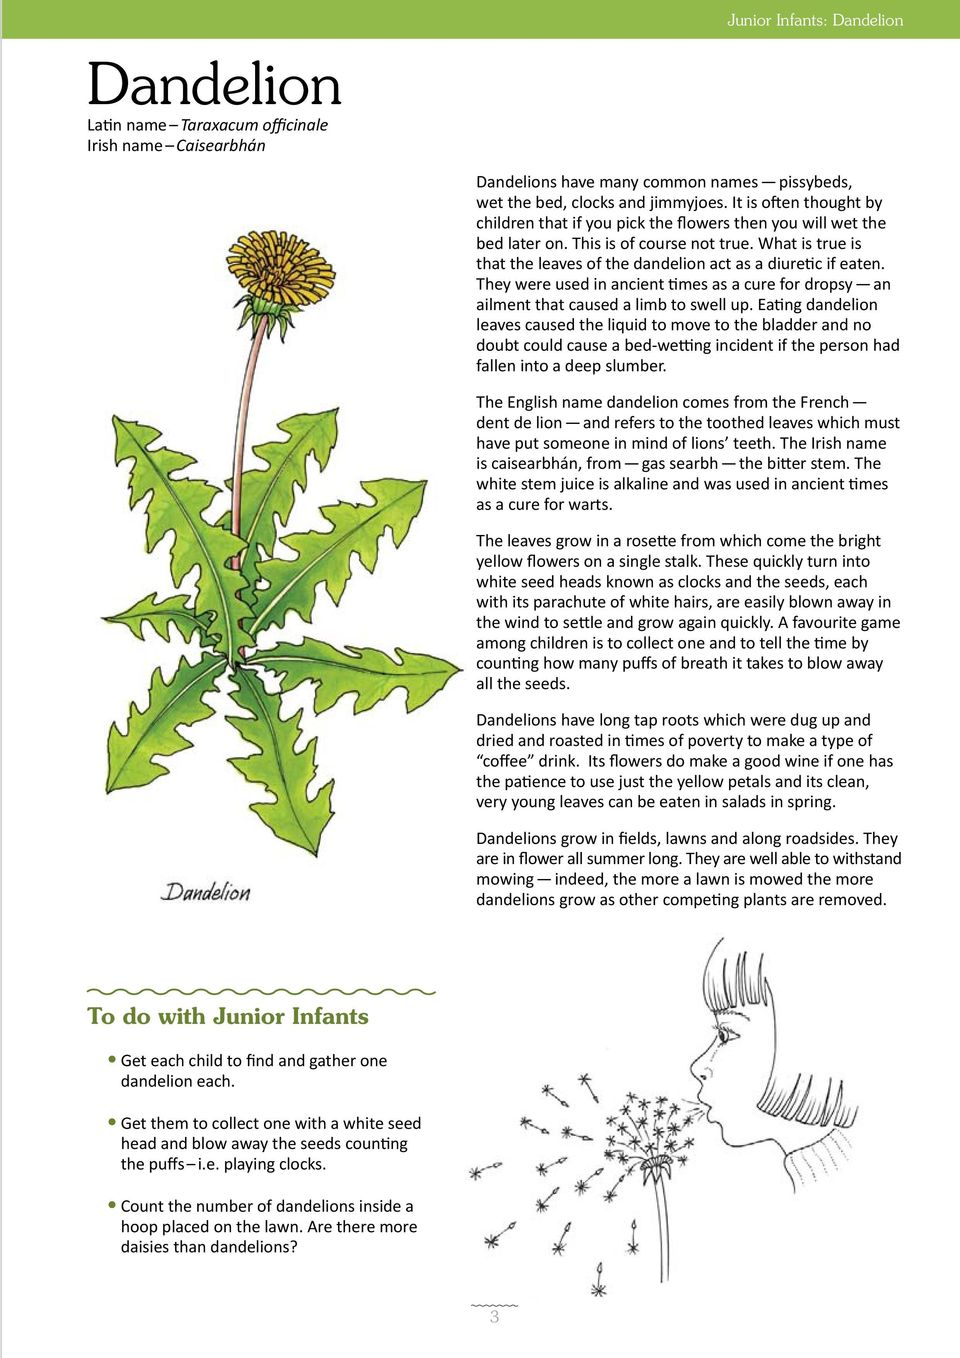 What is true is that the leaves of the dandelion act as a diuretic if eaten. They were used in ancient times as a cure for dropsy an ailment that caused a limb to swell up.